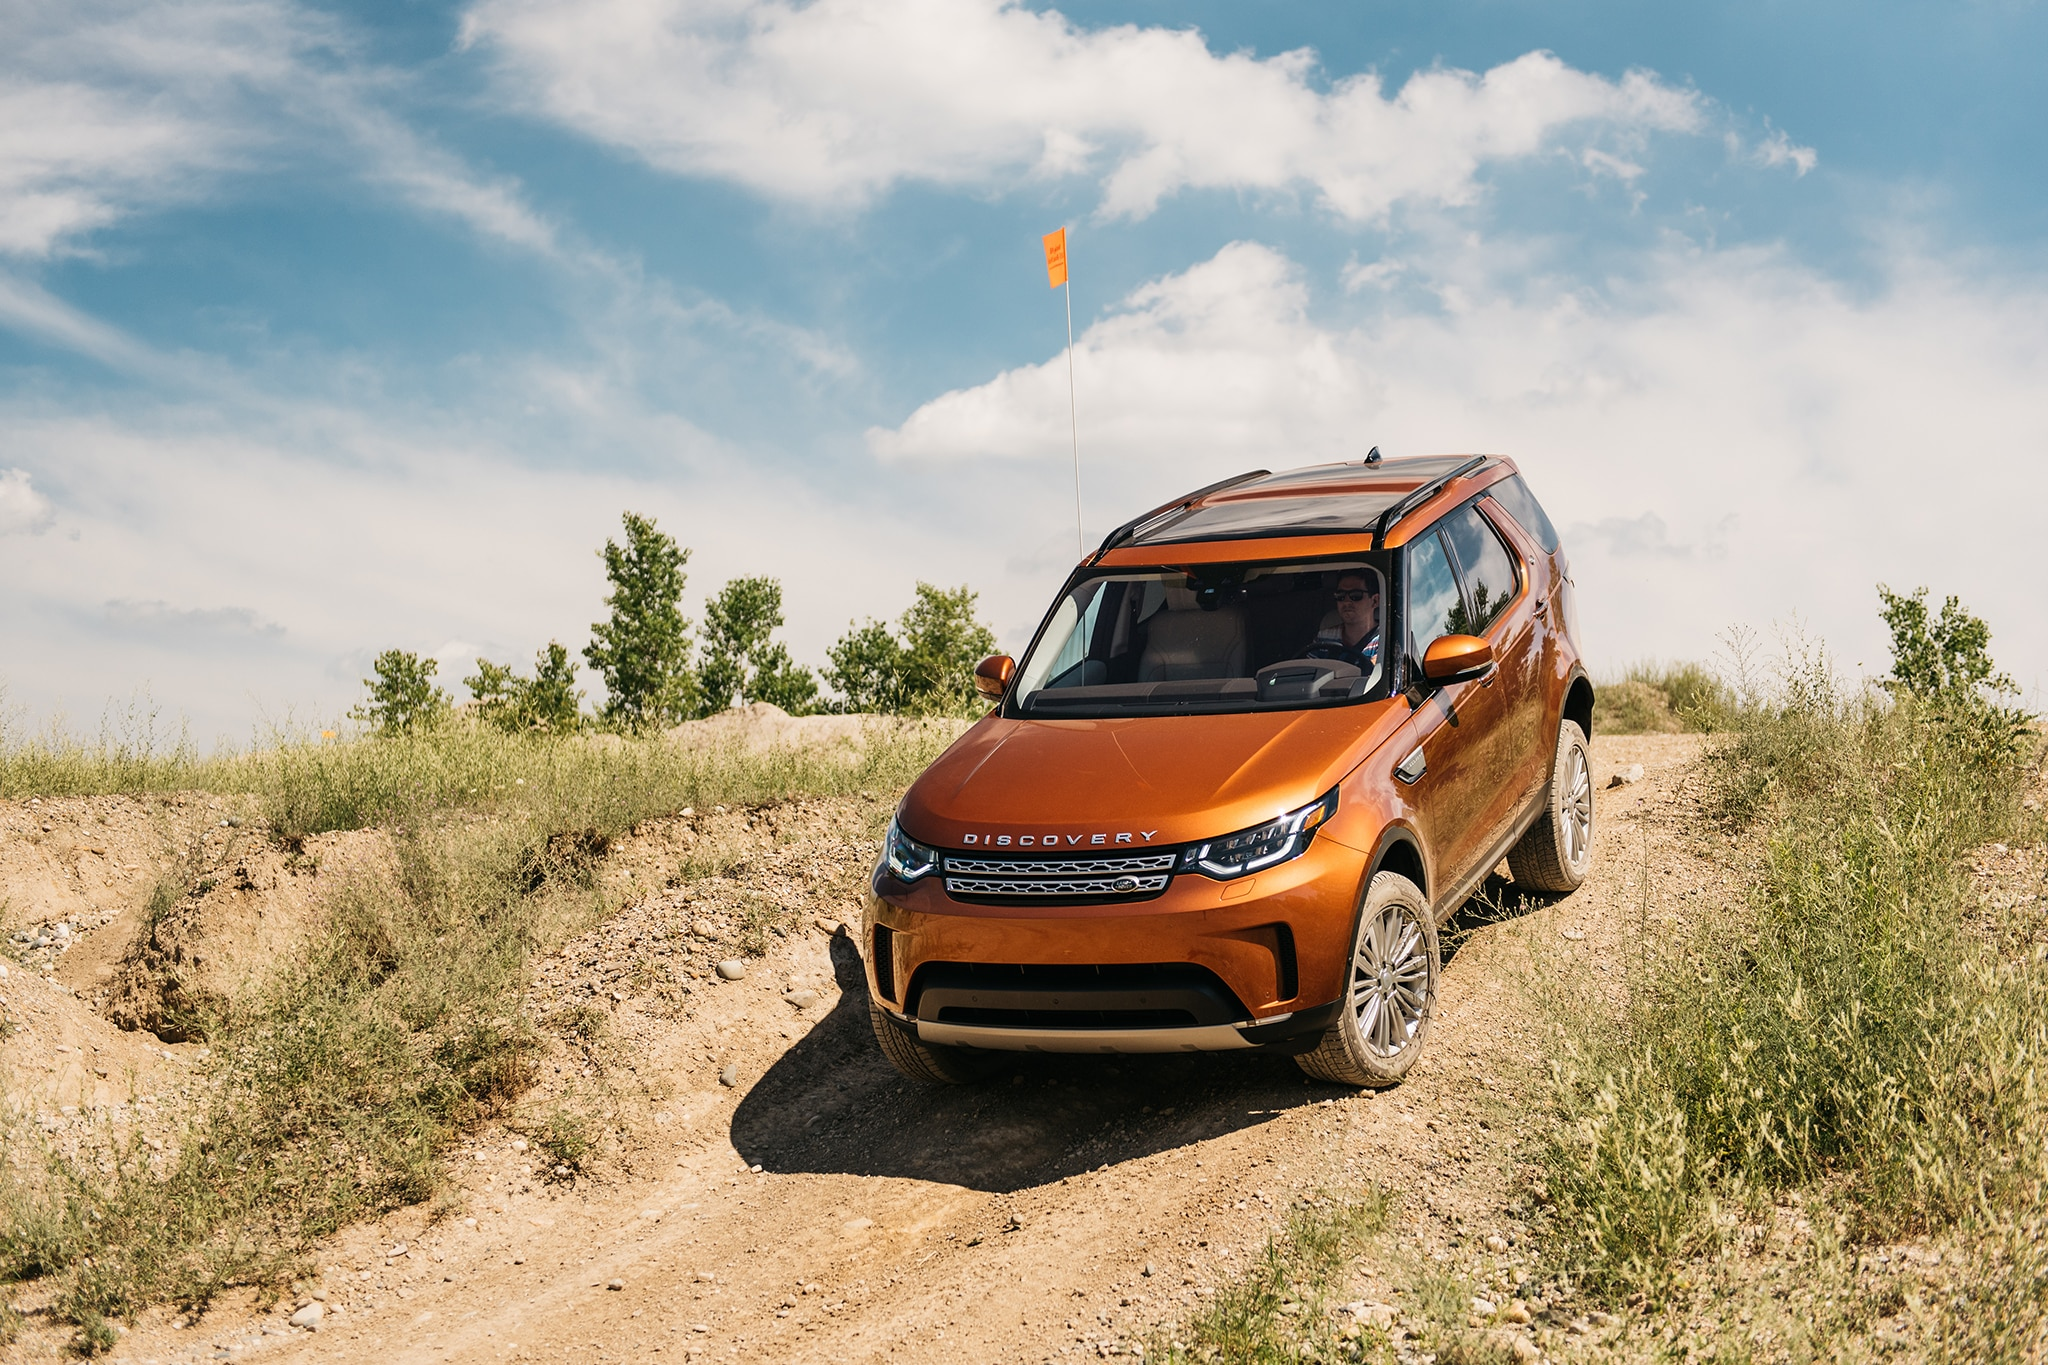 2017 Land Rover Discovery Td6 HSE Front Three Quarter 11